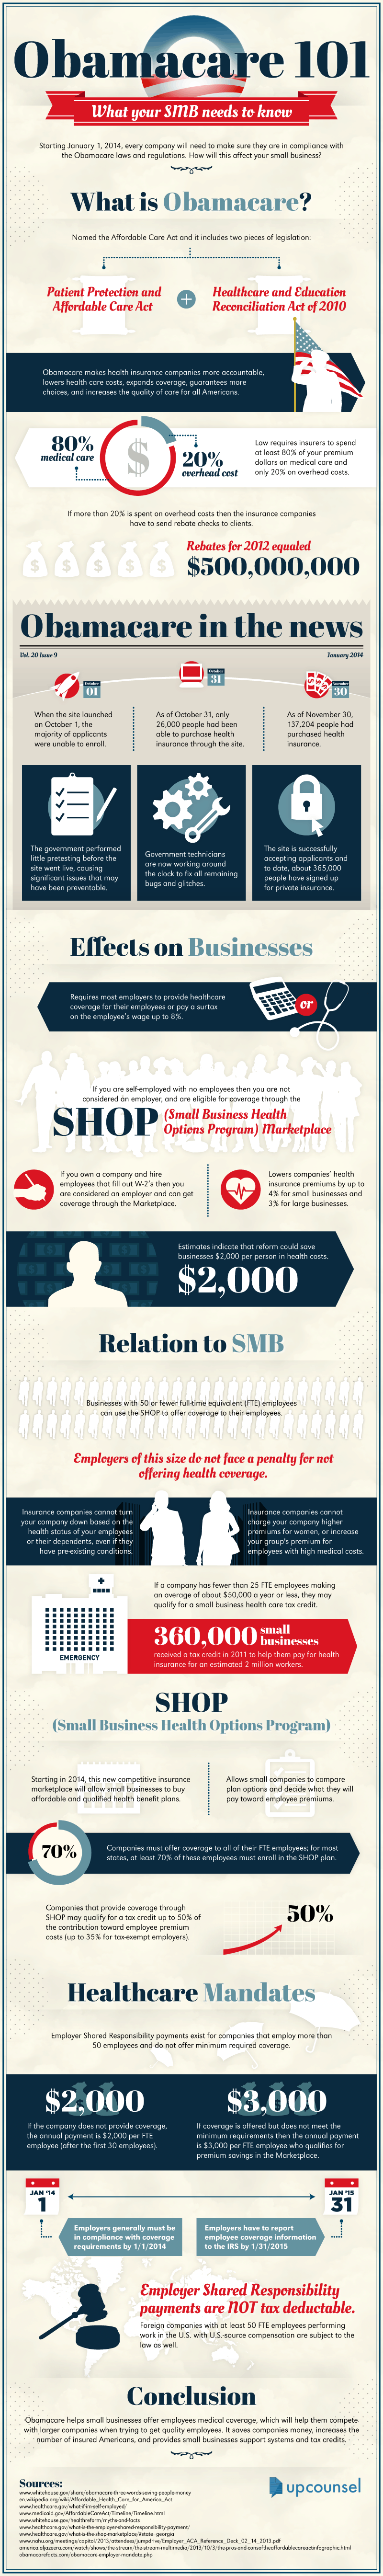 Obamacare 101: What Your Small Business Needs To Know Infographic